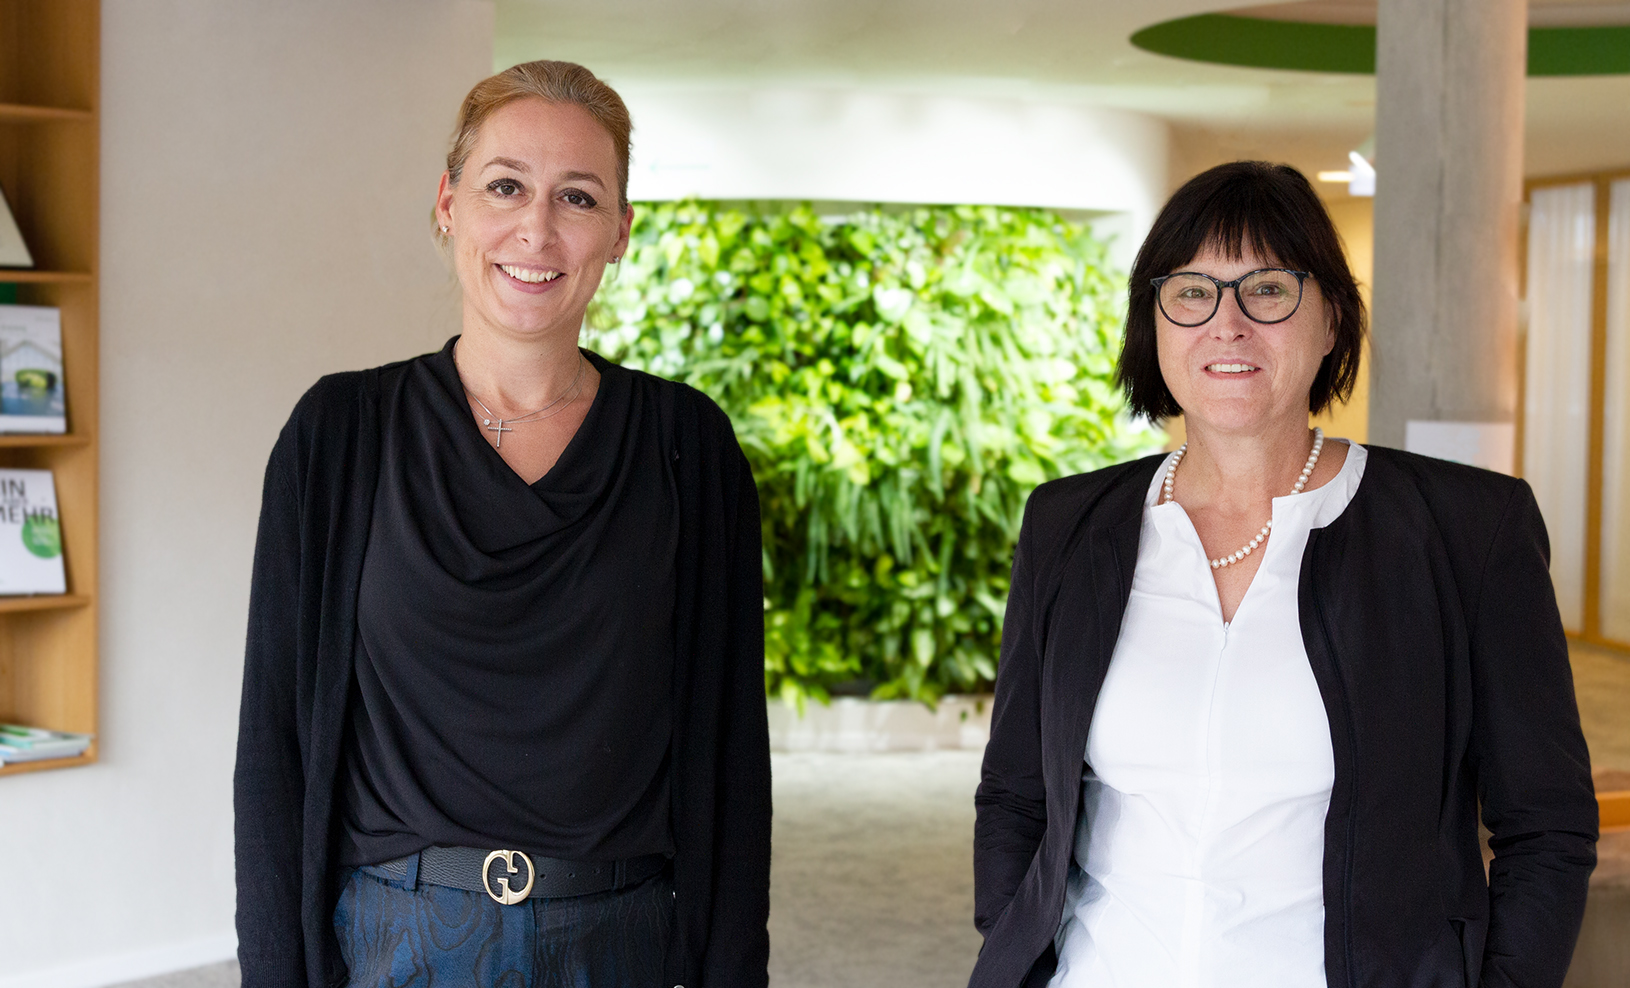 Dr. Christine Lemaitre, Chief Executive Officer of the DGNB and Karin Lang, Chief Financial Officer of IBA'27 GmbH (Credits: DGNB)